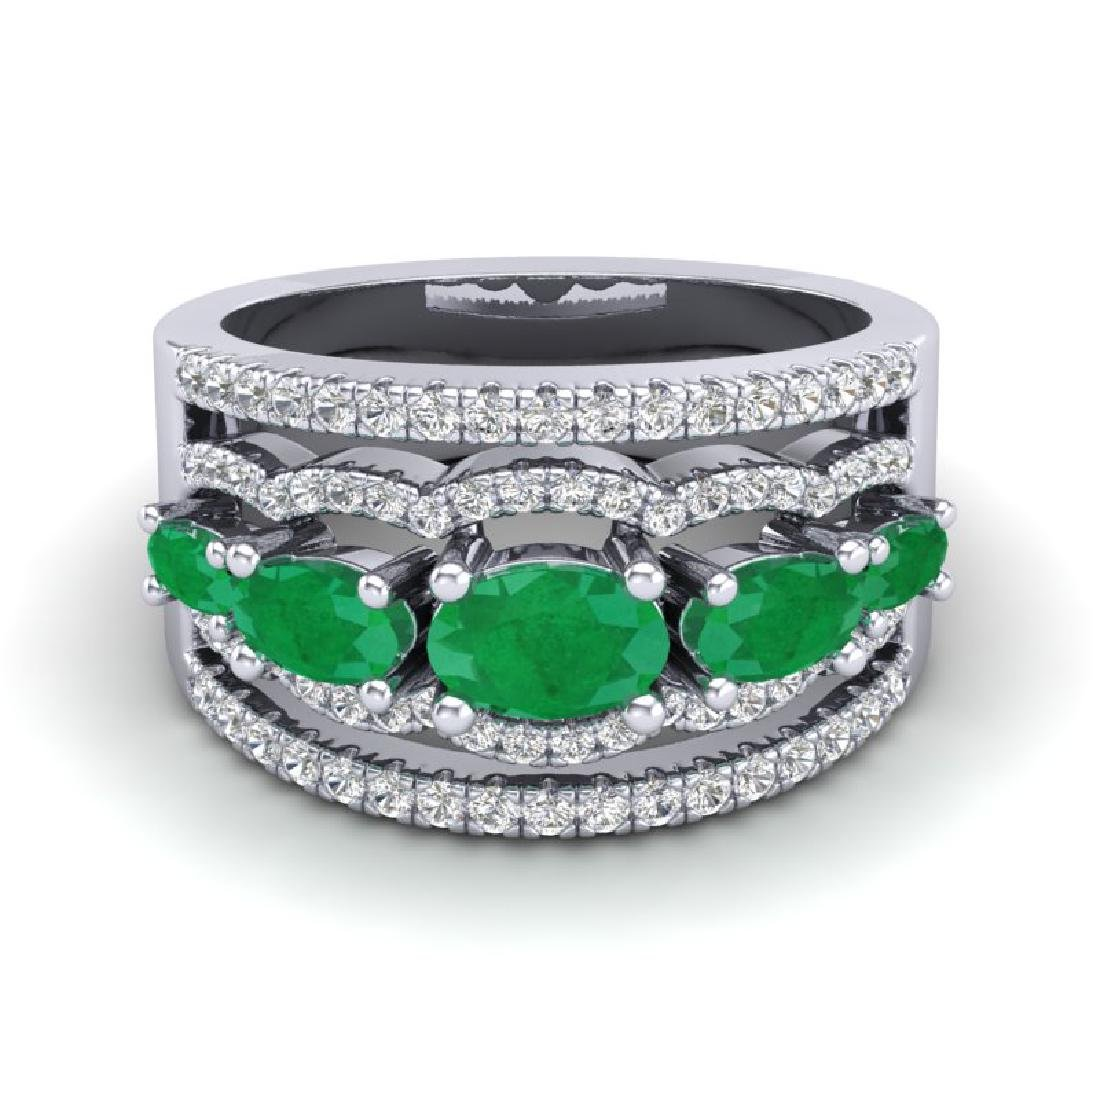 2.25 CTW Emerald & Micro Pave VS/SI Diamond Designer